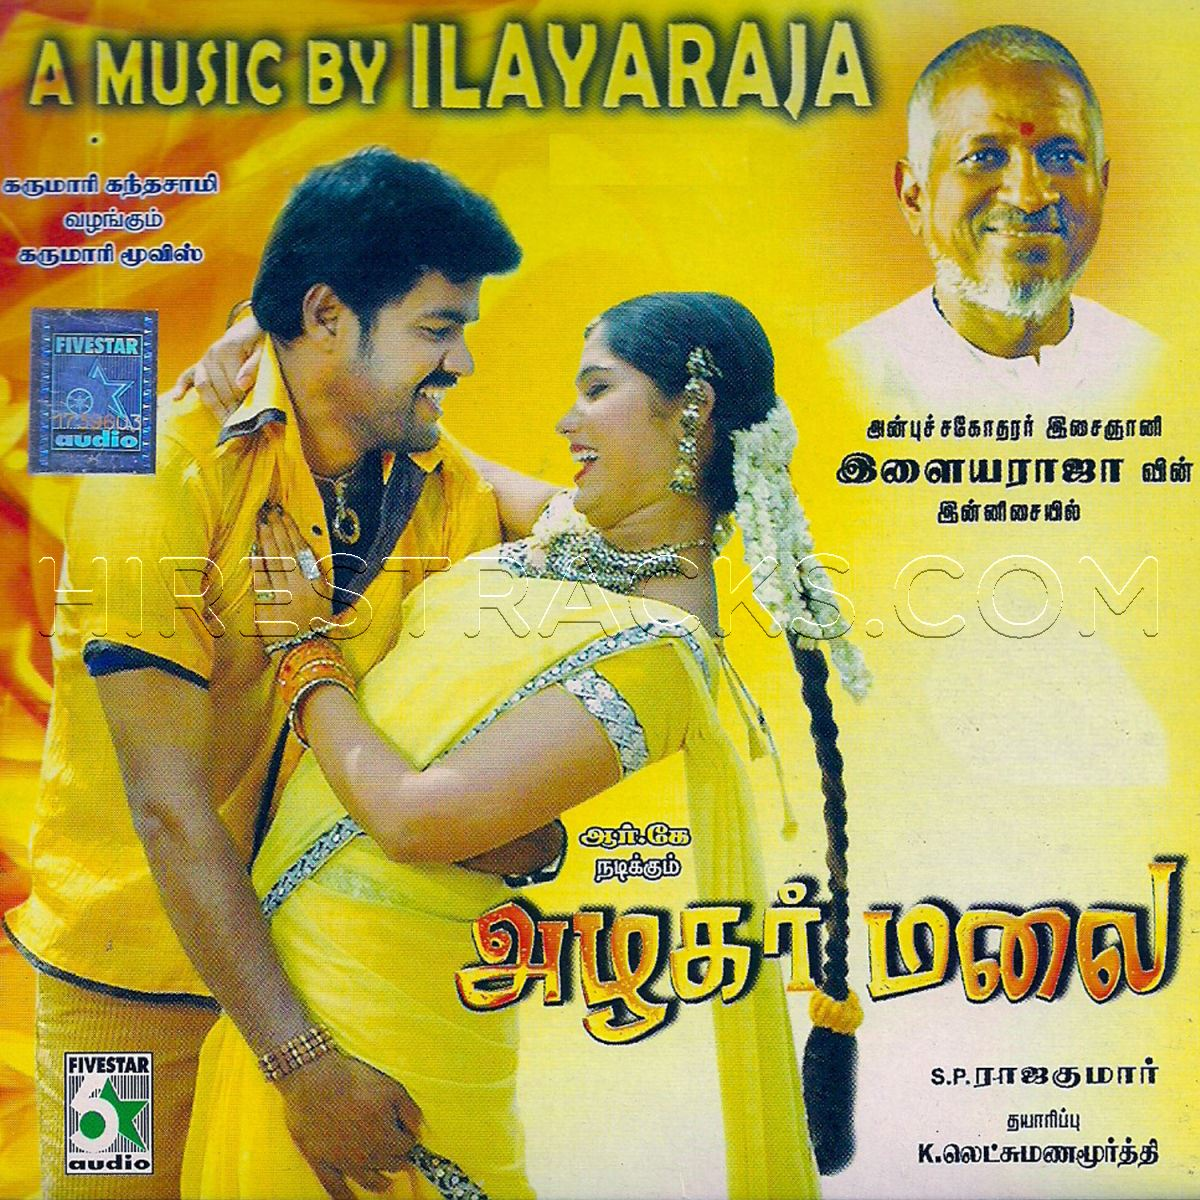 Azhagar Malai (2009) (Ilaiyaraja) (Five Star Audio) [Digital-DL-FLAC]